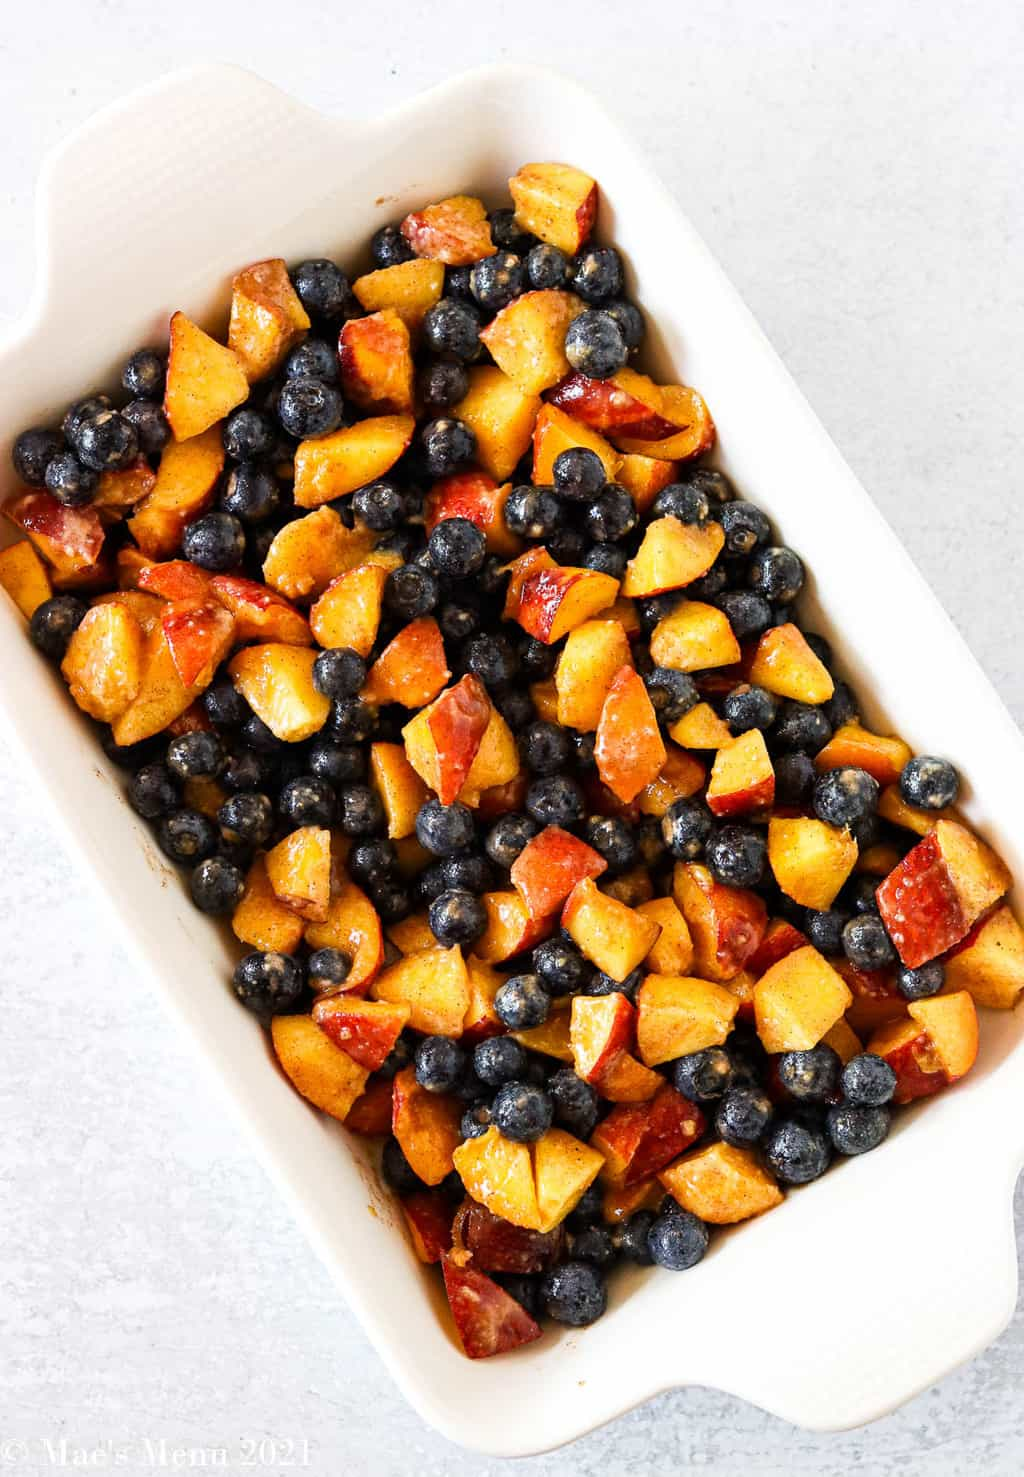 An overhead shot of a pan of blueberries and peaches in a baking dish